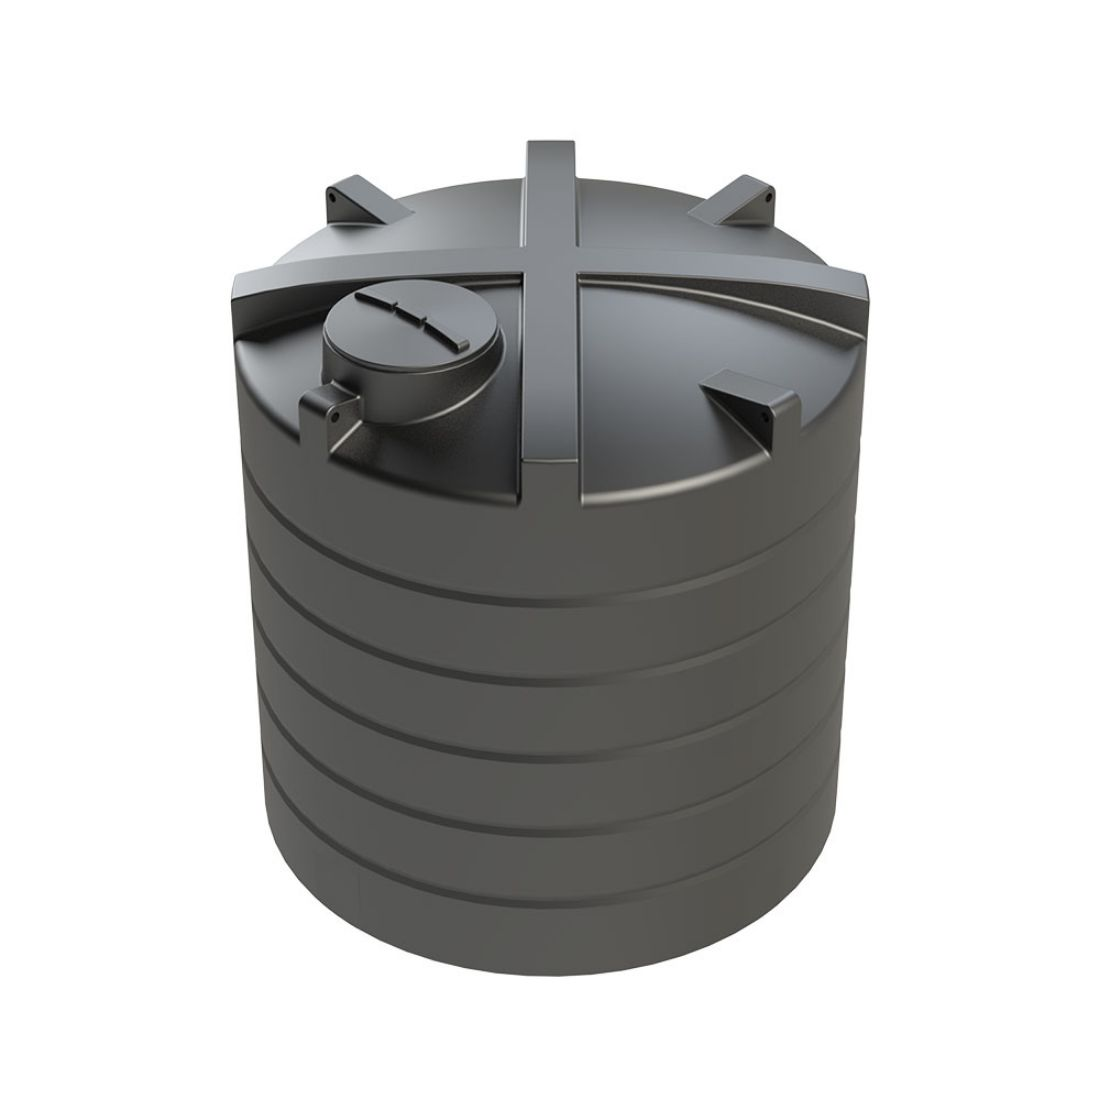 Enduramaxx 10,000 Litre Vertical Potable WRAS Water Storage Tank